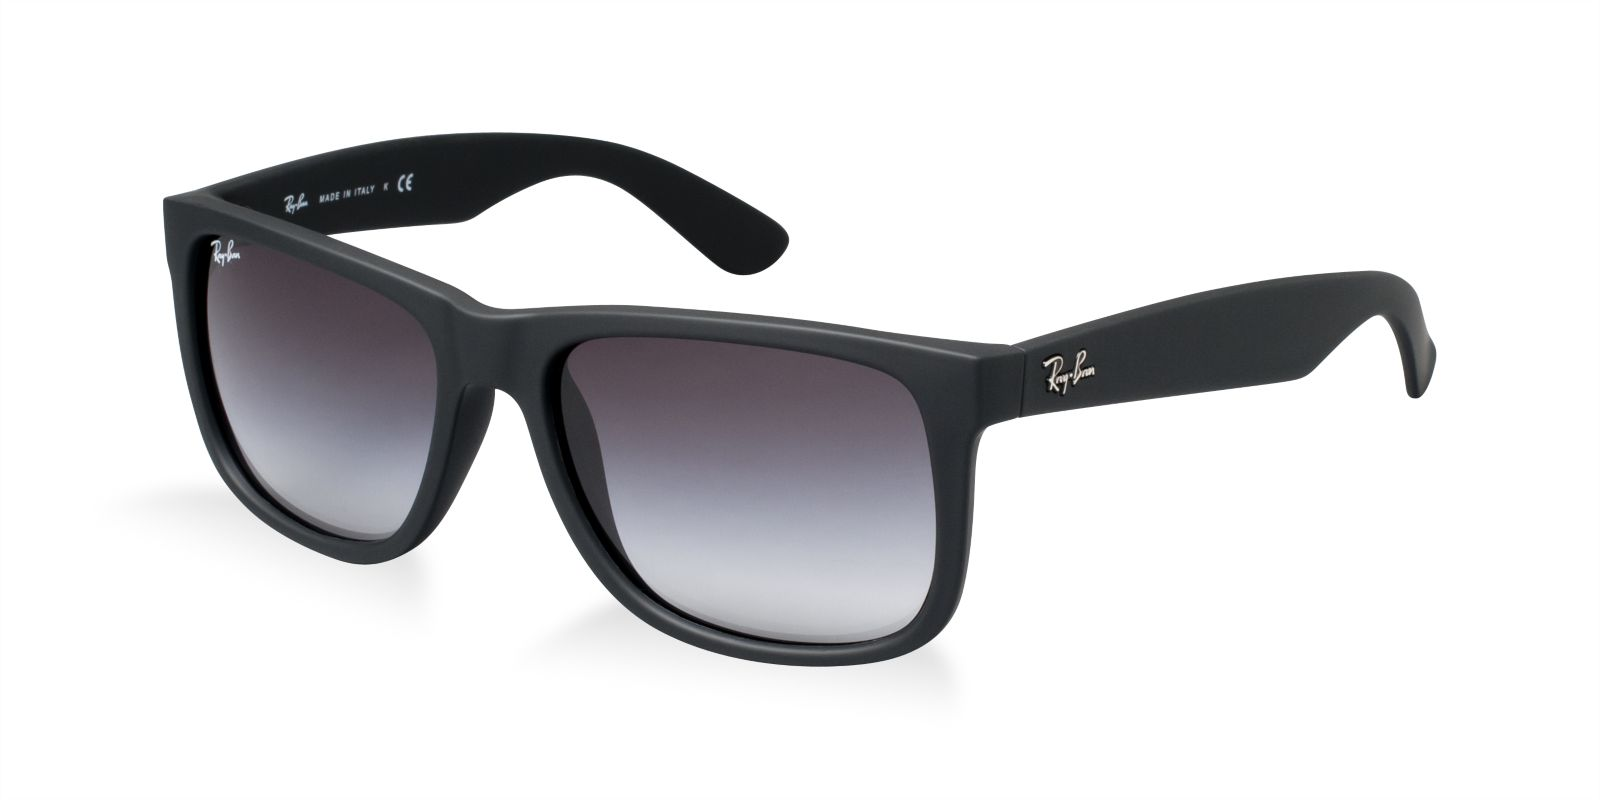 204a035be0a Previous  Next. Previous  Next. RAY-BAN RB4165 601 8G BLACK JUSTIN  SUNGLASSES